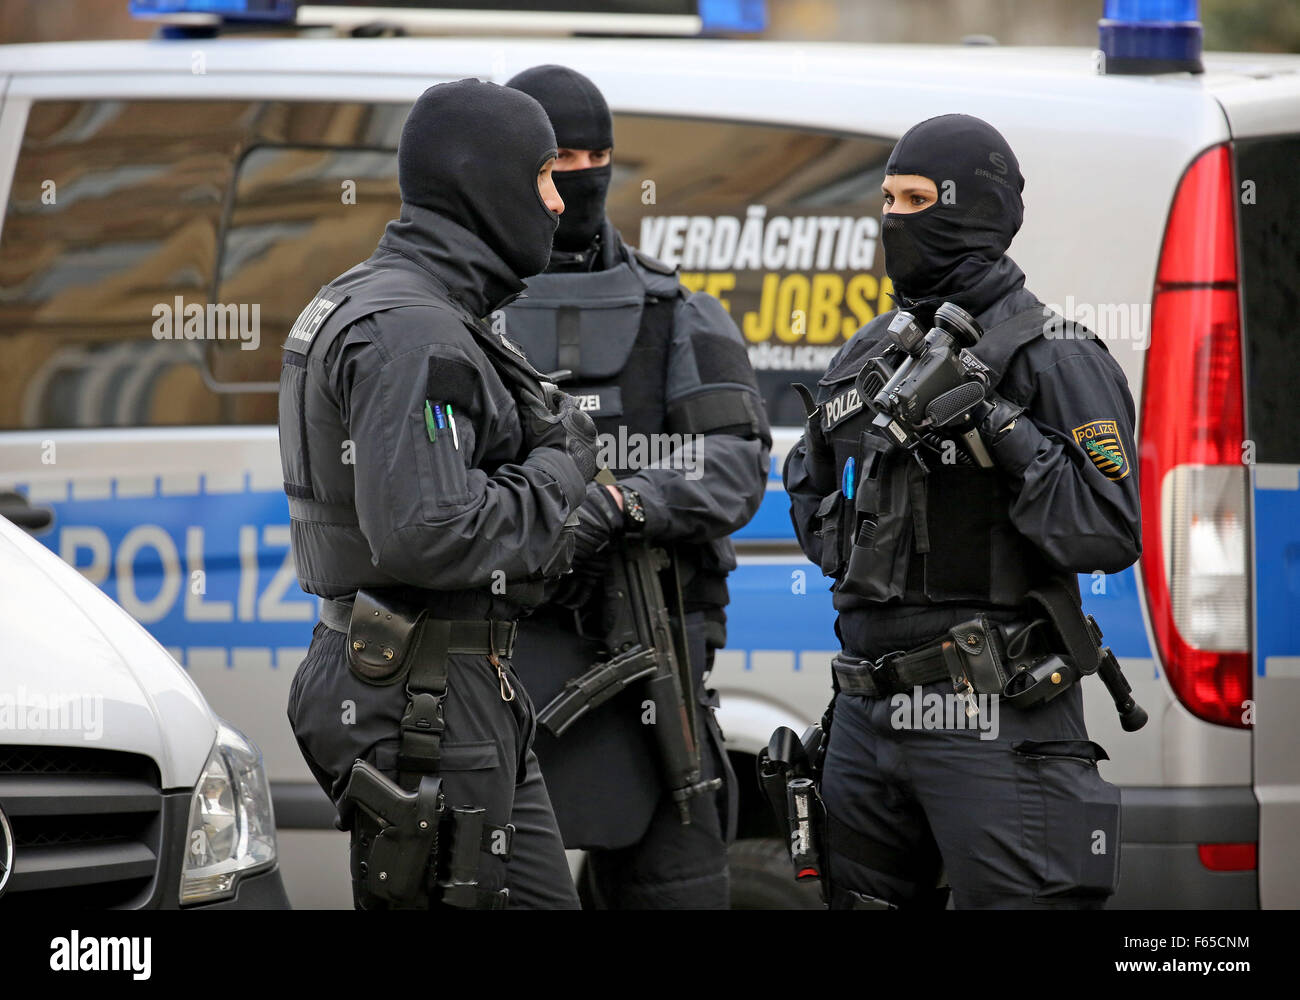 Drug Raid Stock Photos & Drug Raid Stock Images - Alamy